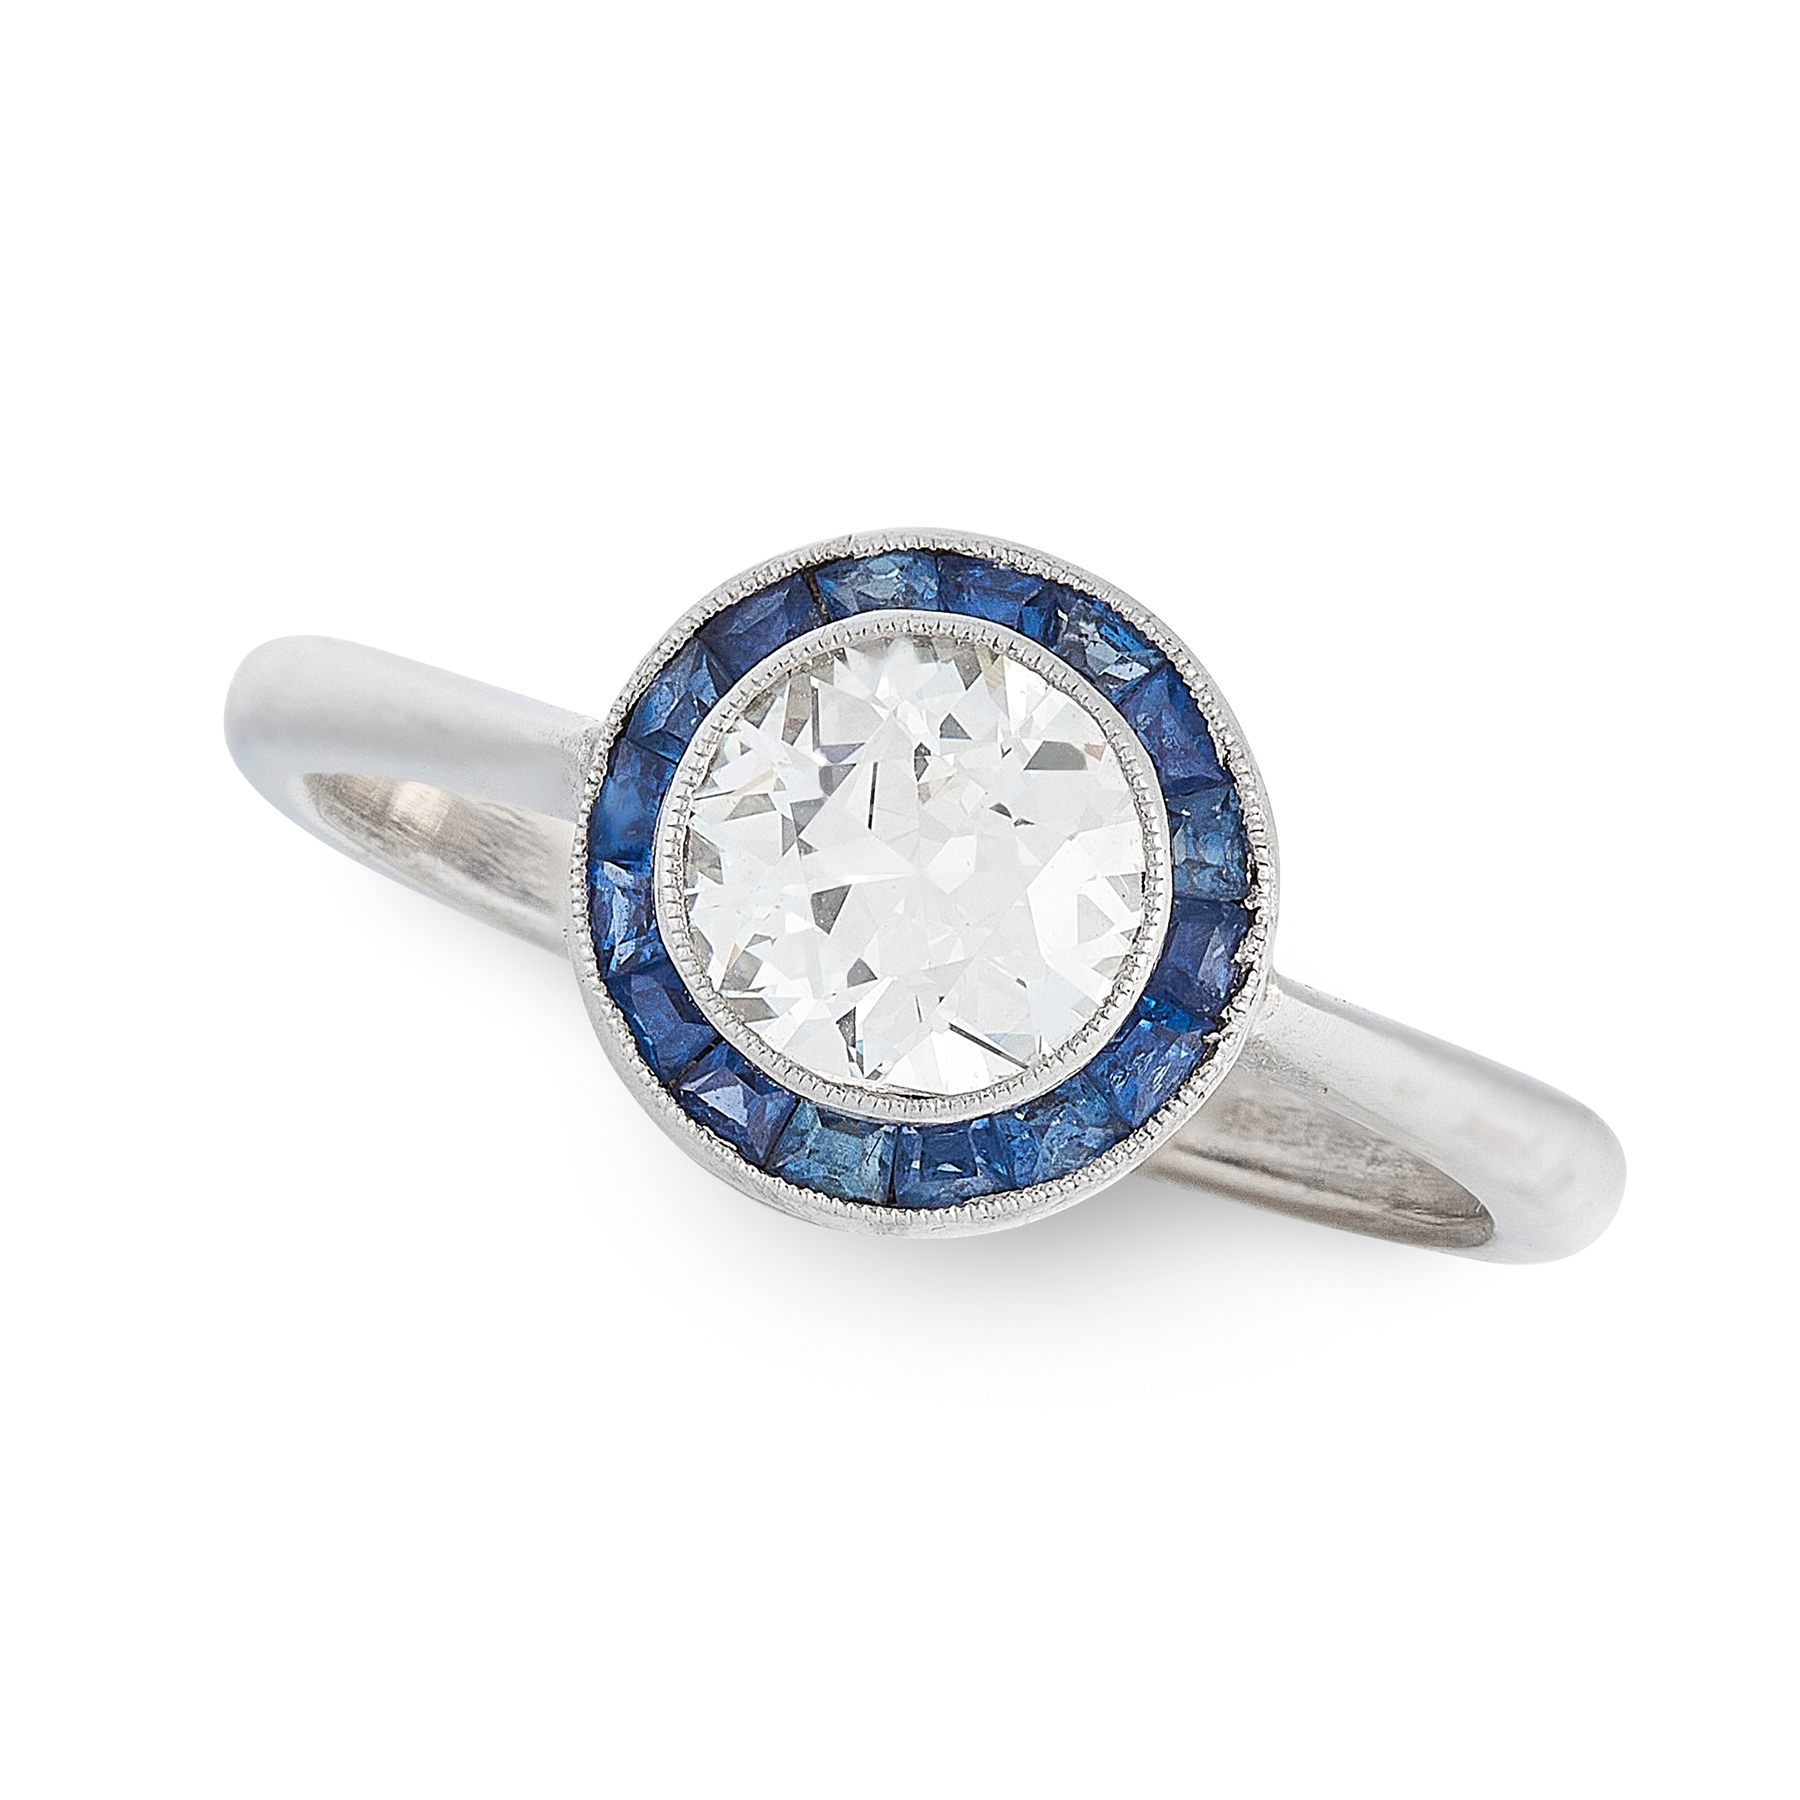 A DIAMOND AND SAPPHIRE TARGET RING set with an old cut diamond of 0.87 carats within a border of